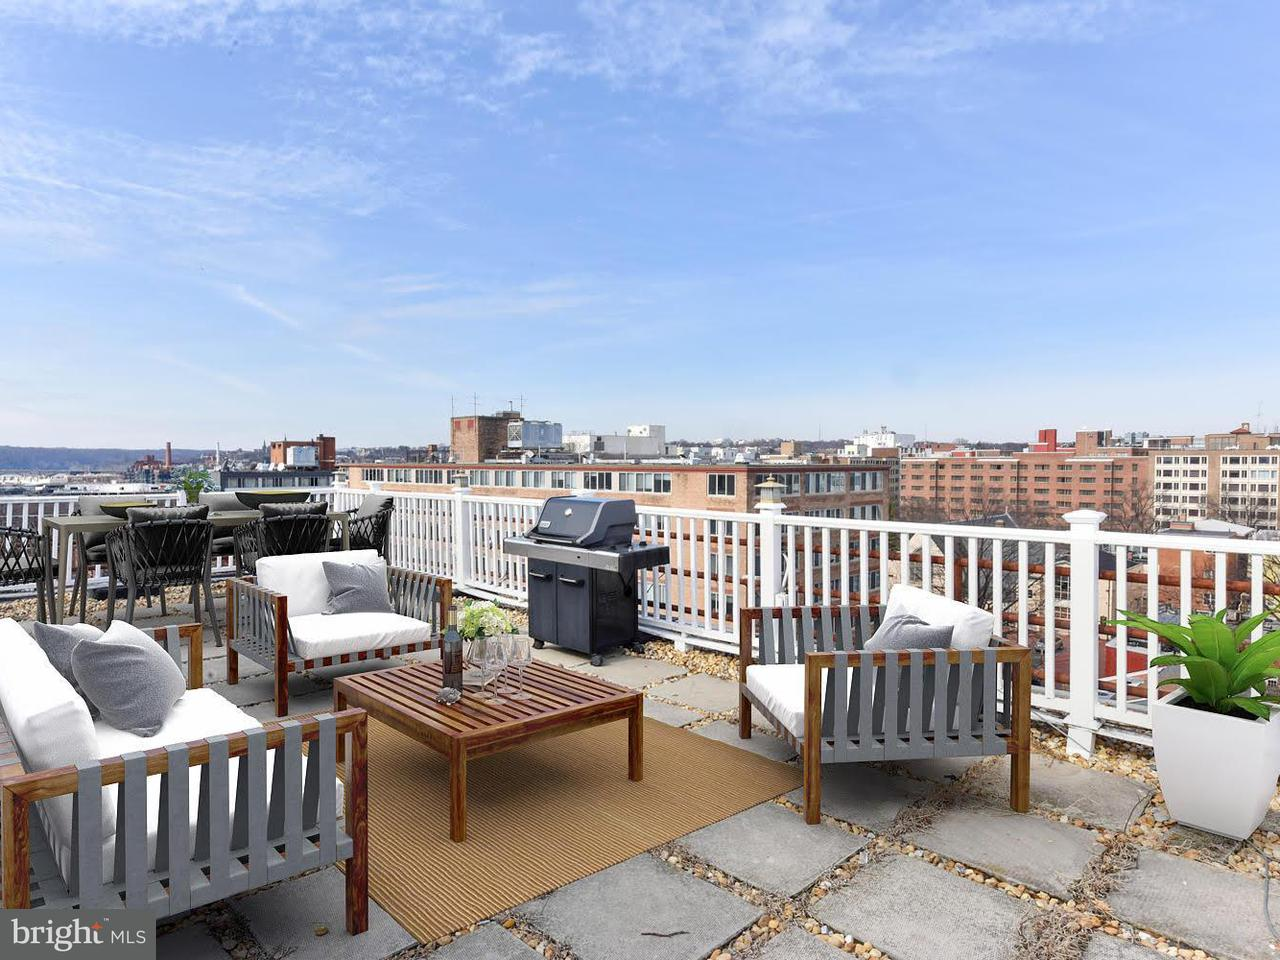 Condominium for Sale at 2405 I St Nw #8c 2405 I St Nw #8c Washington, District Of Columbia 20037 United States